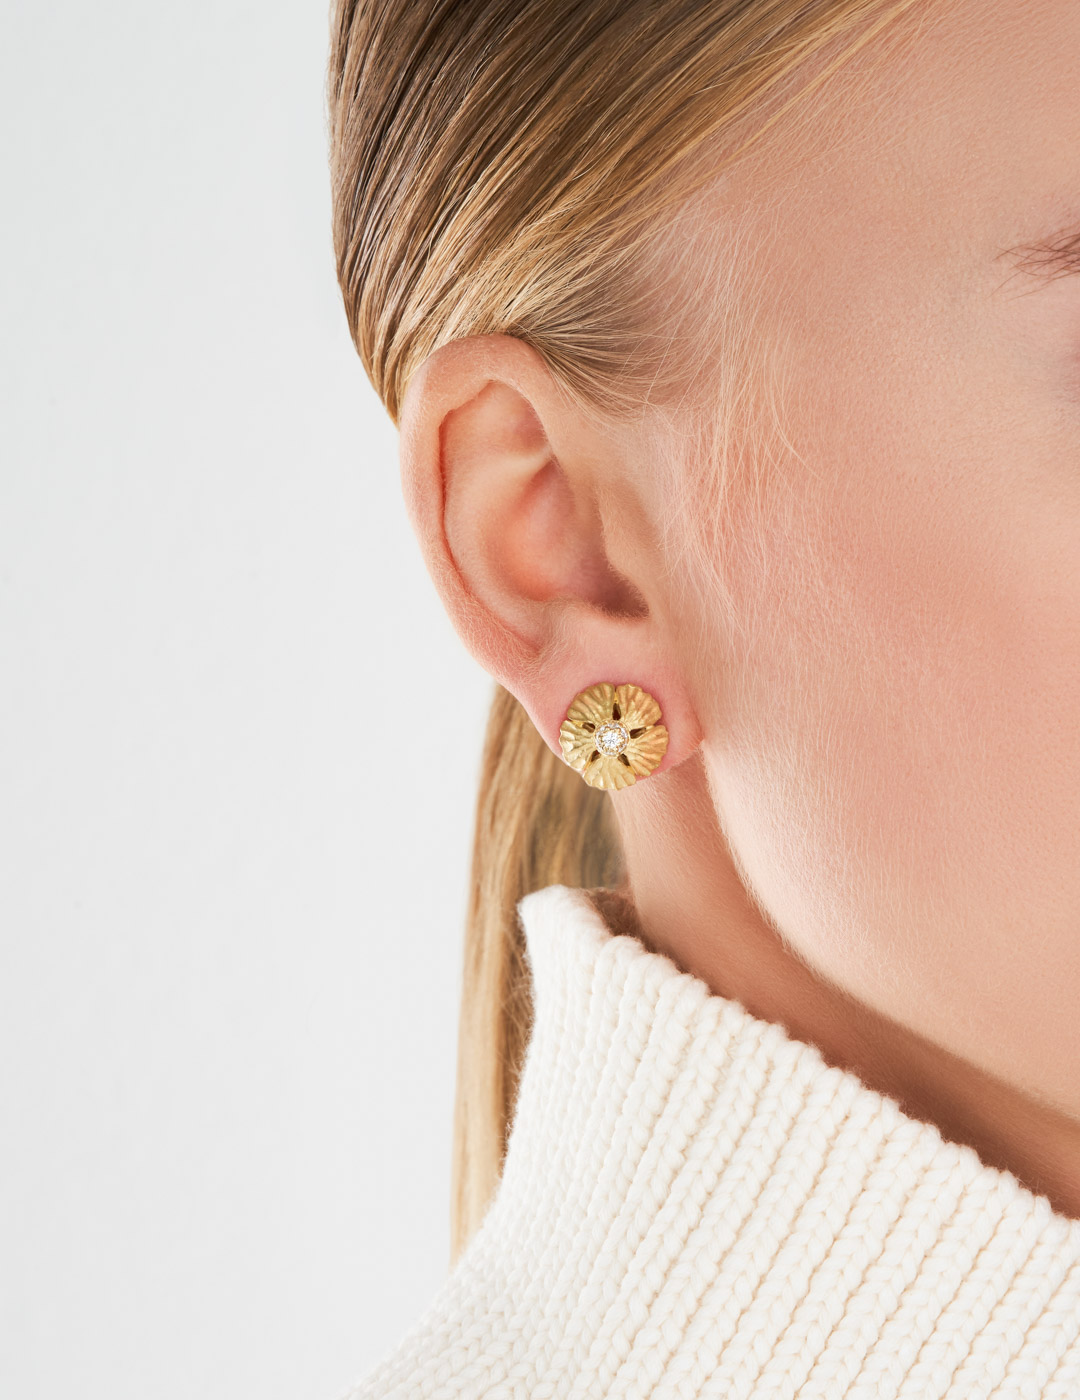 mish_products_earrings_StrawFlwr-Dome-Lg Stud-ER-2